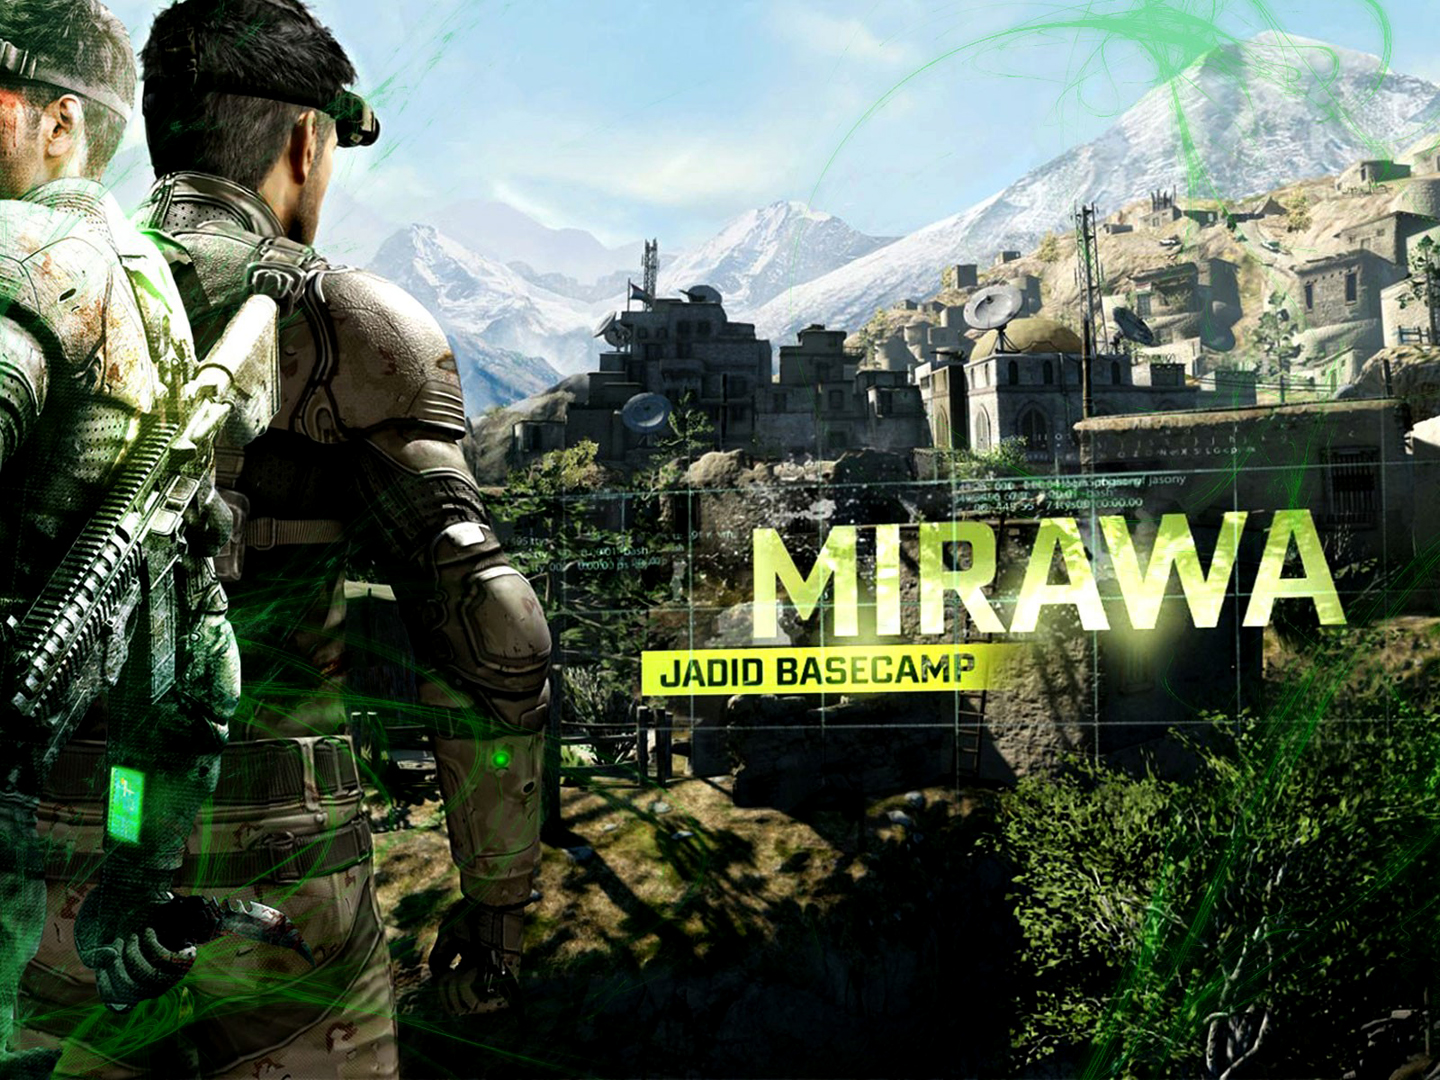 http://2.bp.blogspot.com/-R3jR4PGgNa8/UKdZvhhTiQI/AAAAAAAAGJQ/dn7I9fUe3Ps/s1600/Splinter-Cell-Blacklist-Jadid-Basecamp-HD-Wallpaper_GameWallBase.Com.jpg